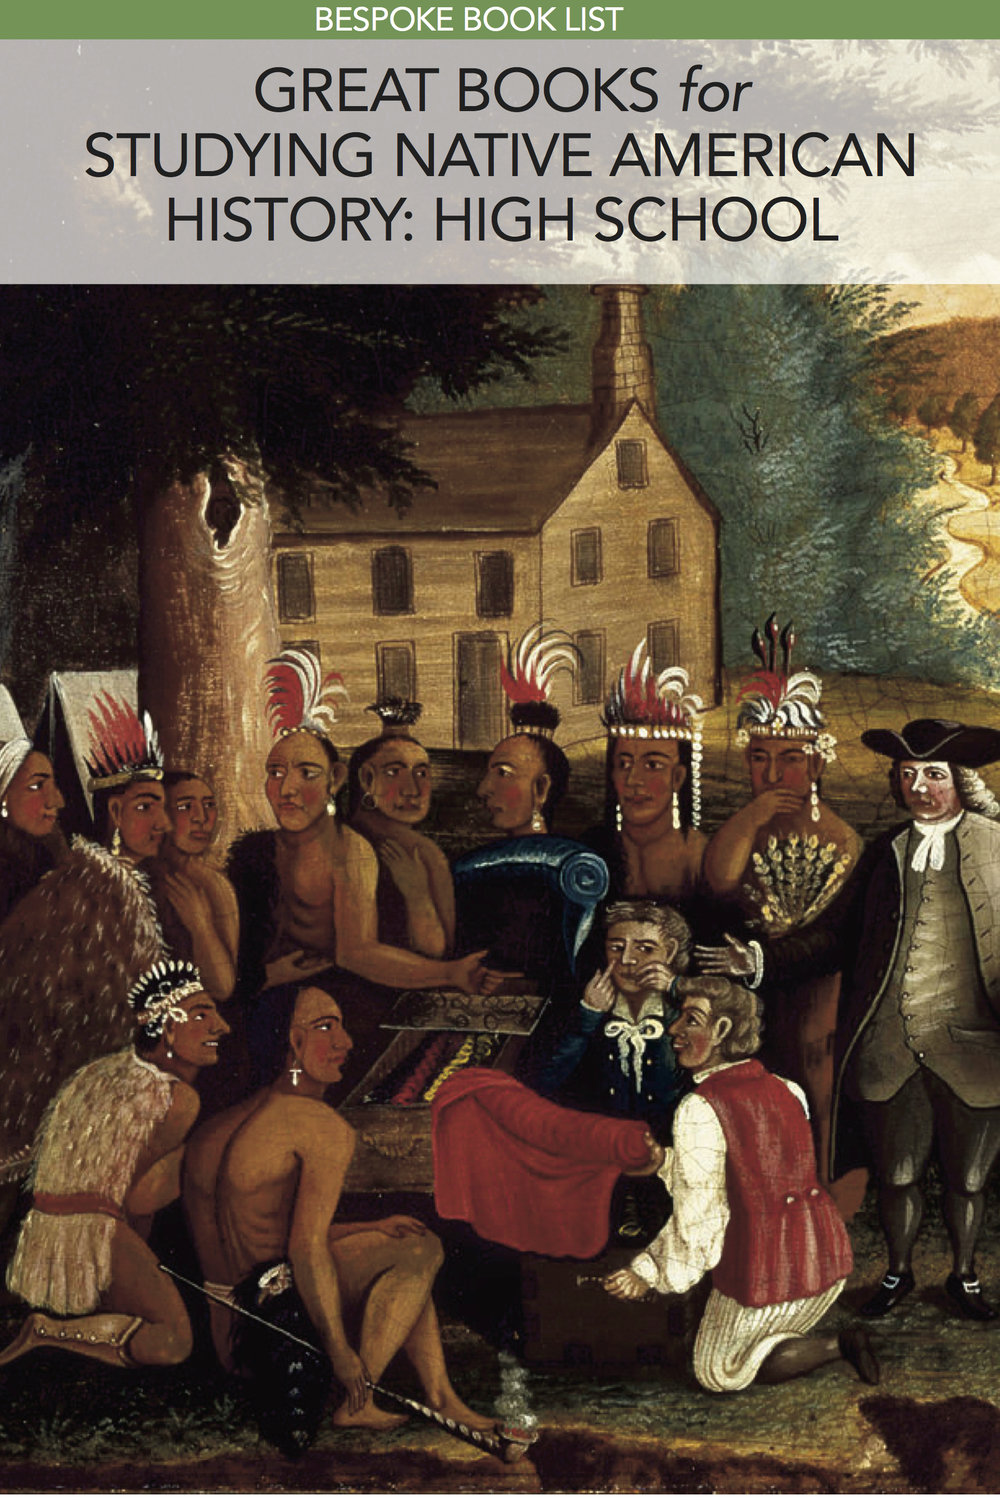 Great Books for Studying Native American History: High School